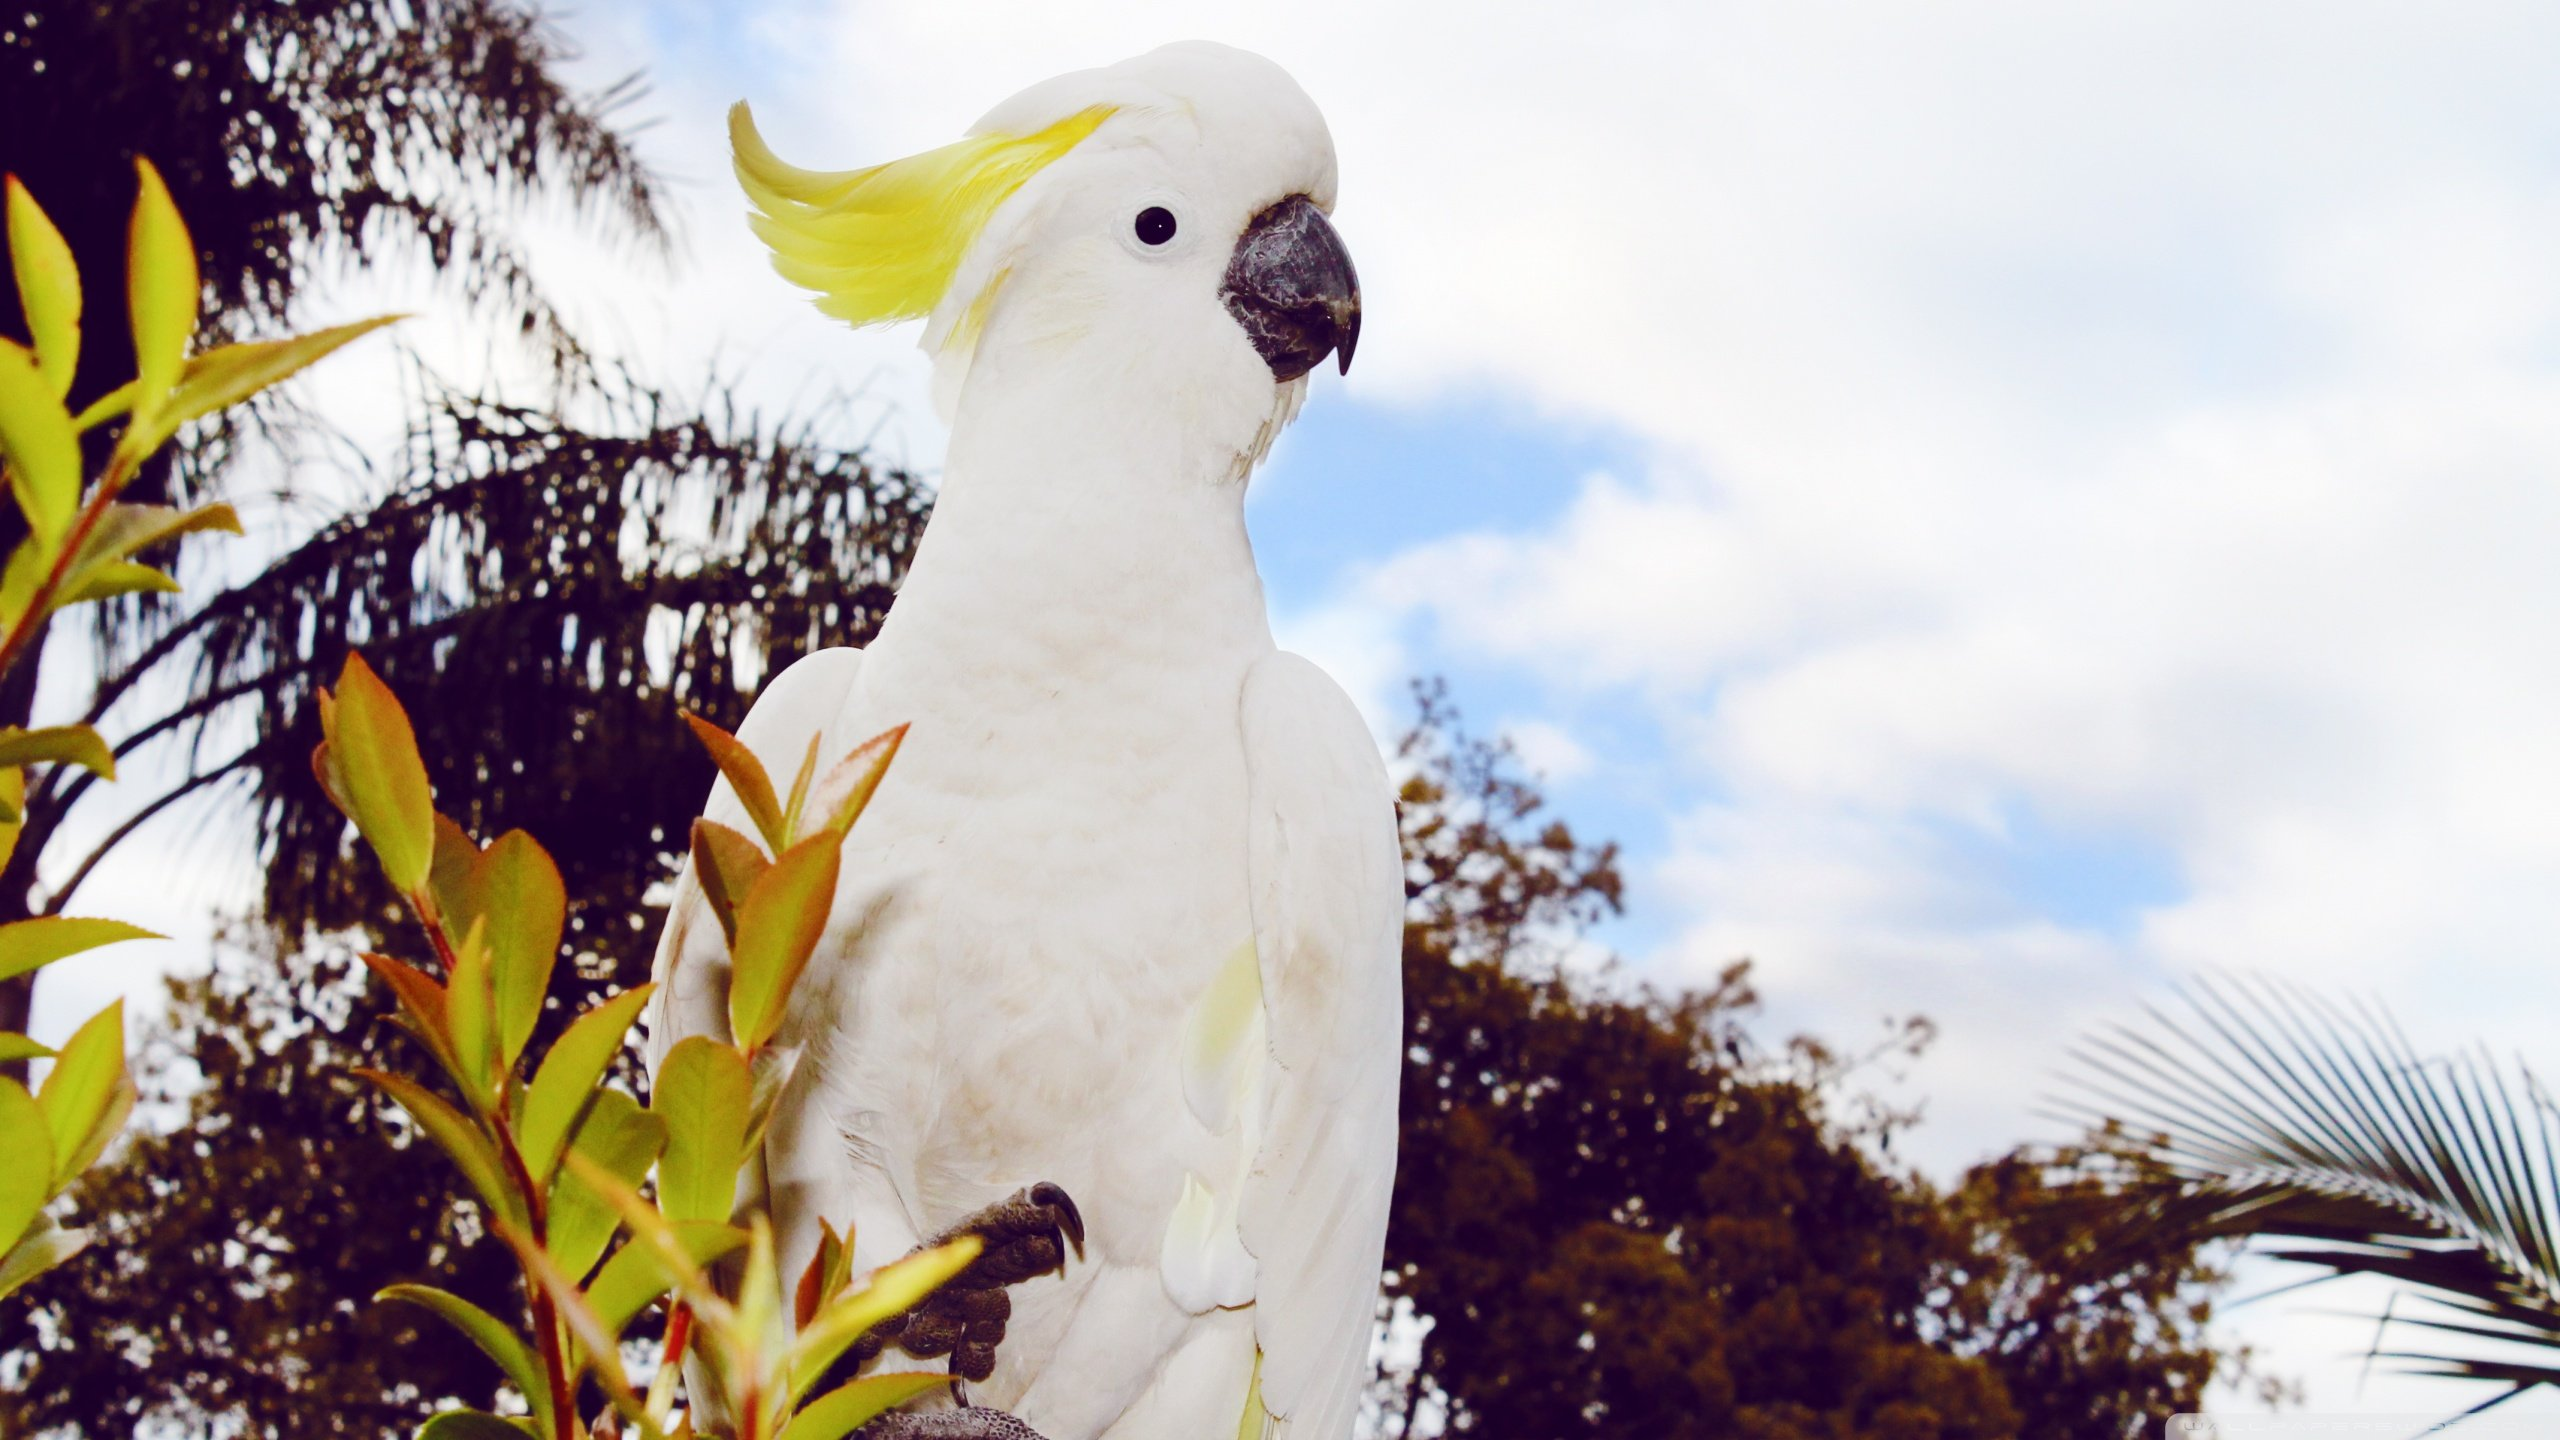 Free Sulphur-crested Cockatoo high quality background ID:130229 for hd 2560x1440 computer